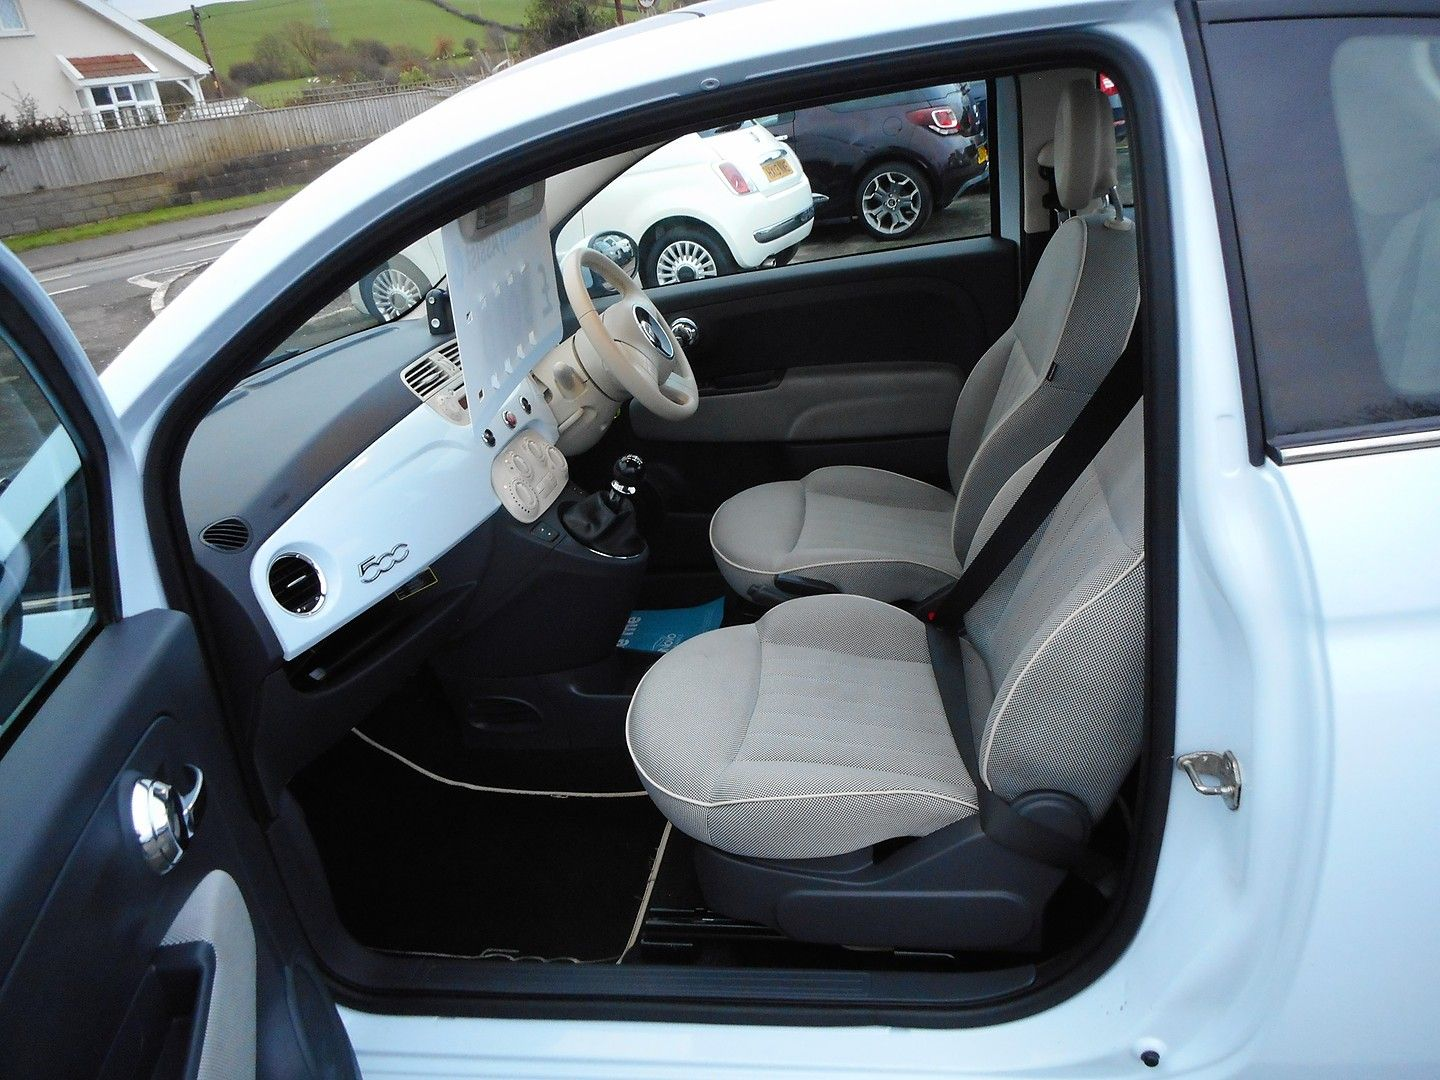 FIAT 500 1.2i Lounge (2010) - Picture 9